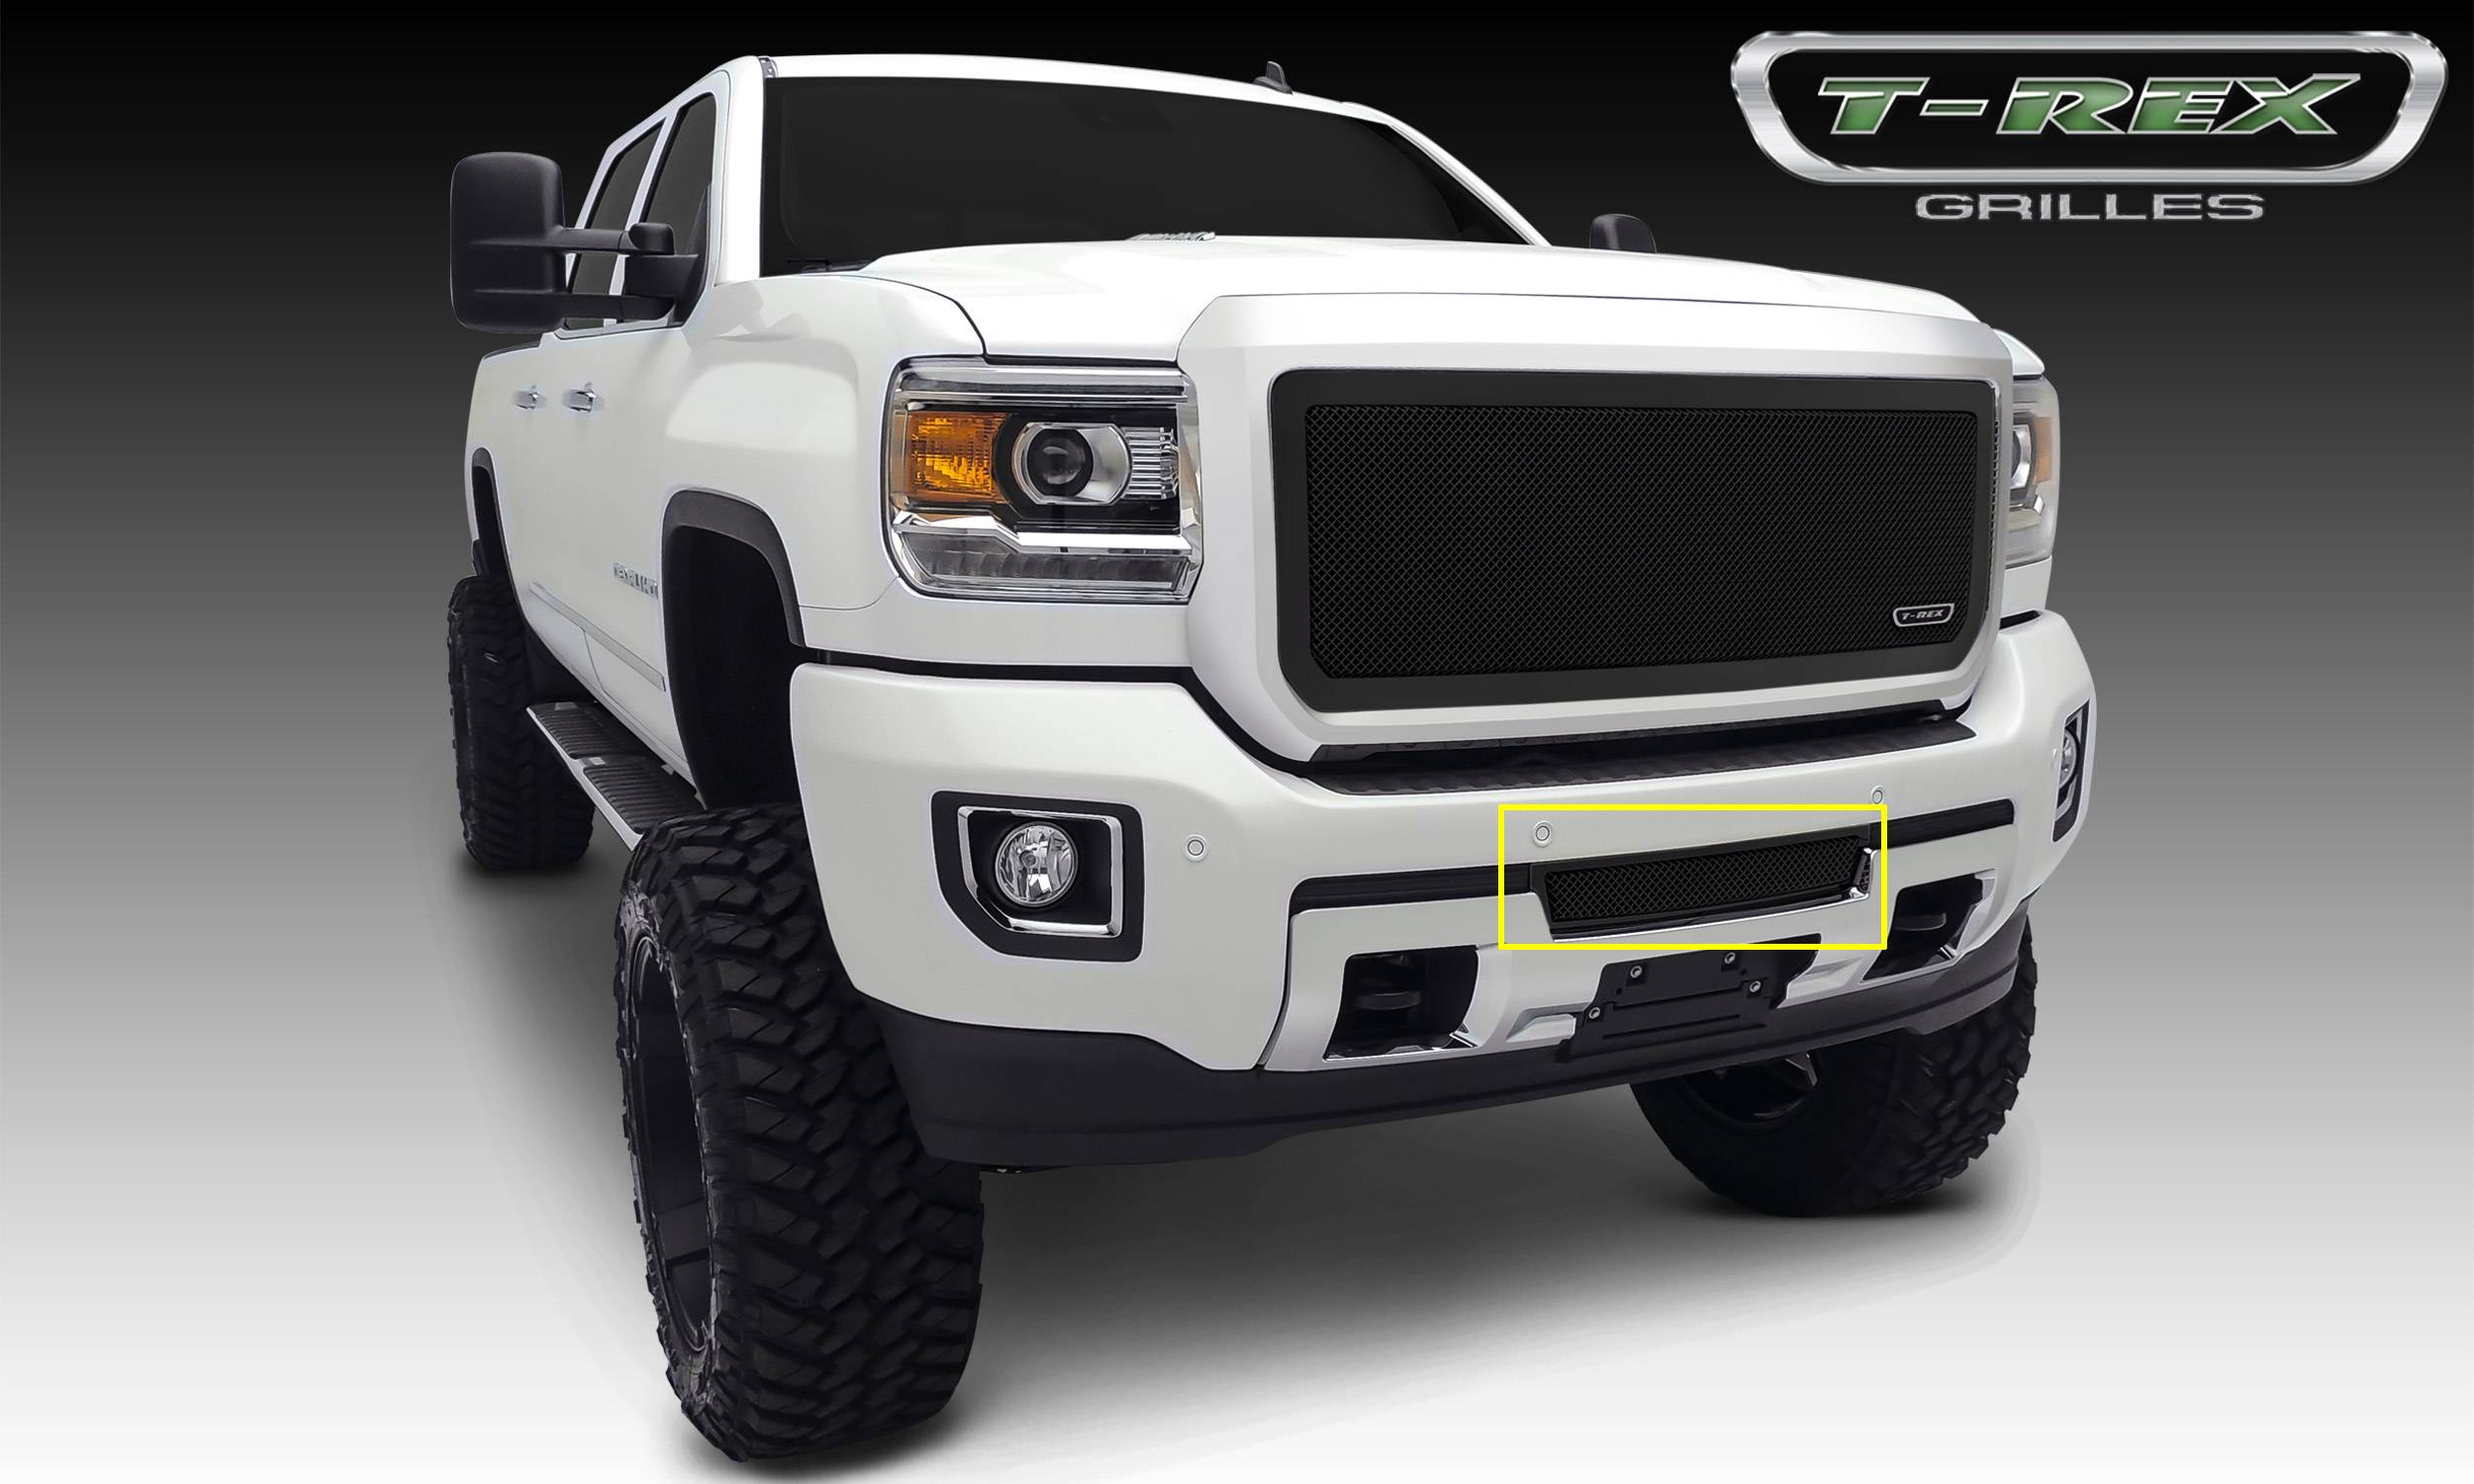 T-REX GMC Sierra HD Upper Class, Formed Mesh Grille, Bumper, Insert, 1 Pc, Black Powdercoated Mild Steel - Pt # 52211